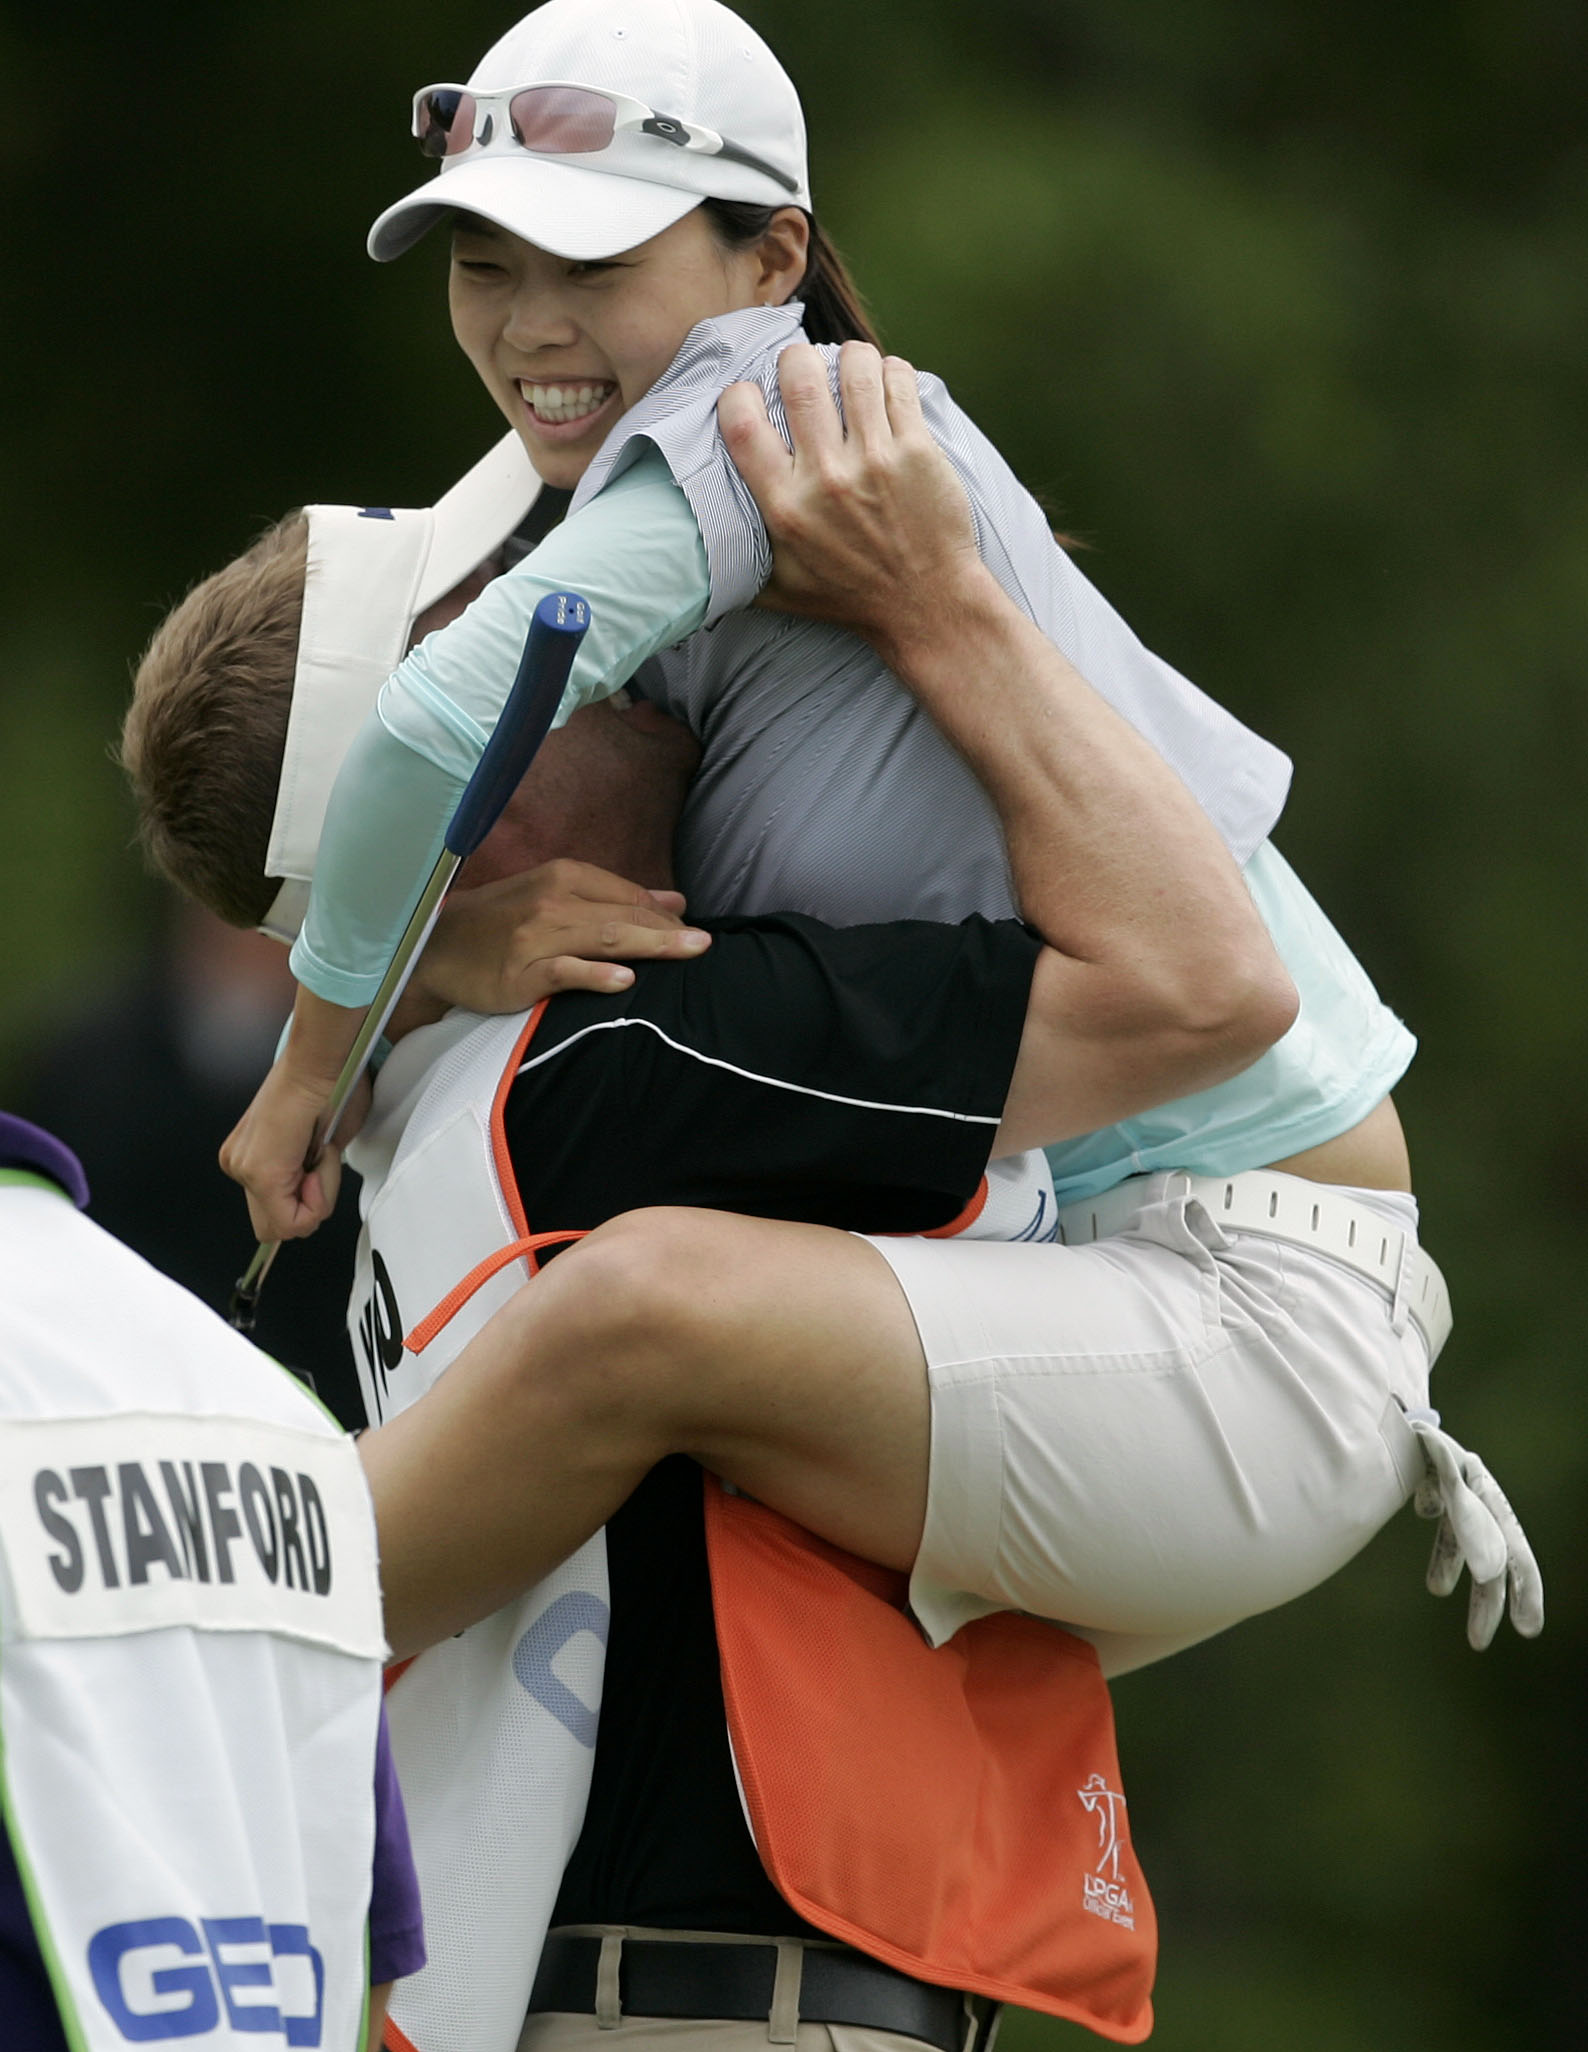 Sun Young Yoo jumps into the arms of her caddie, Kurt Kowaluk, after winning the Sybase Match Play Championship.